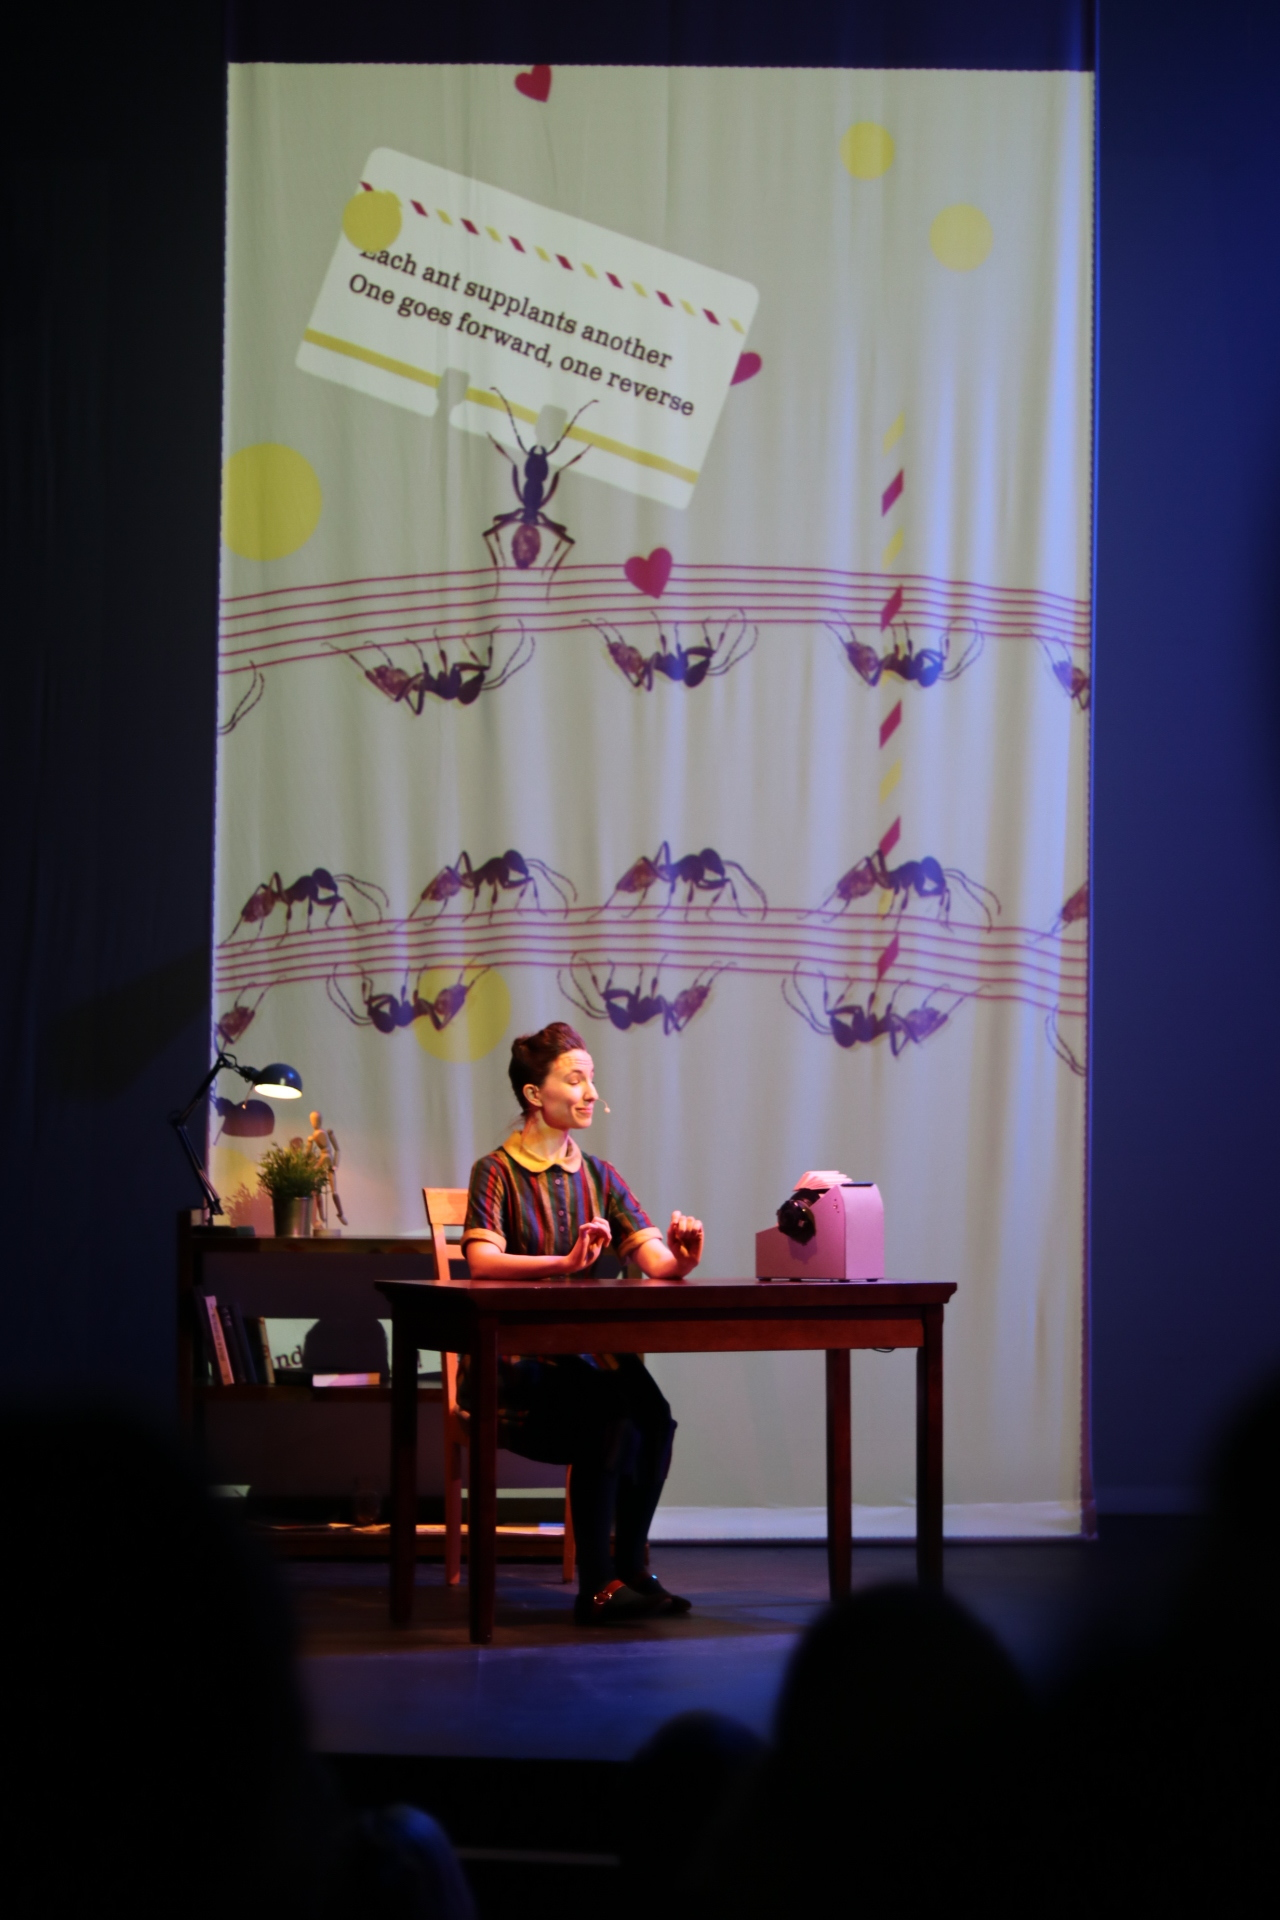 The show was created by assistant professor of digital media and design, Anna Lindemann, who was inspired by the similarities in social lives of humans and ants.  Photo by Maggie Chafouleas for The Daily Campus.